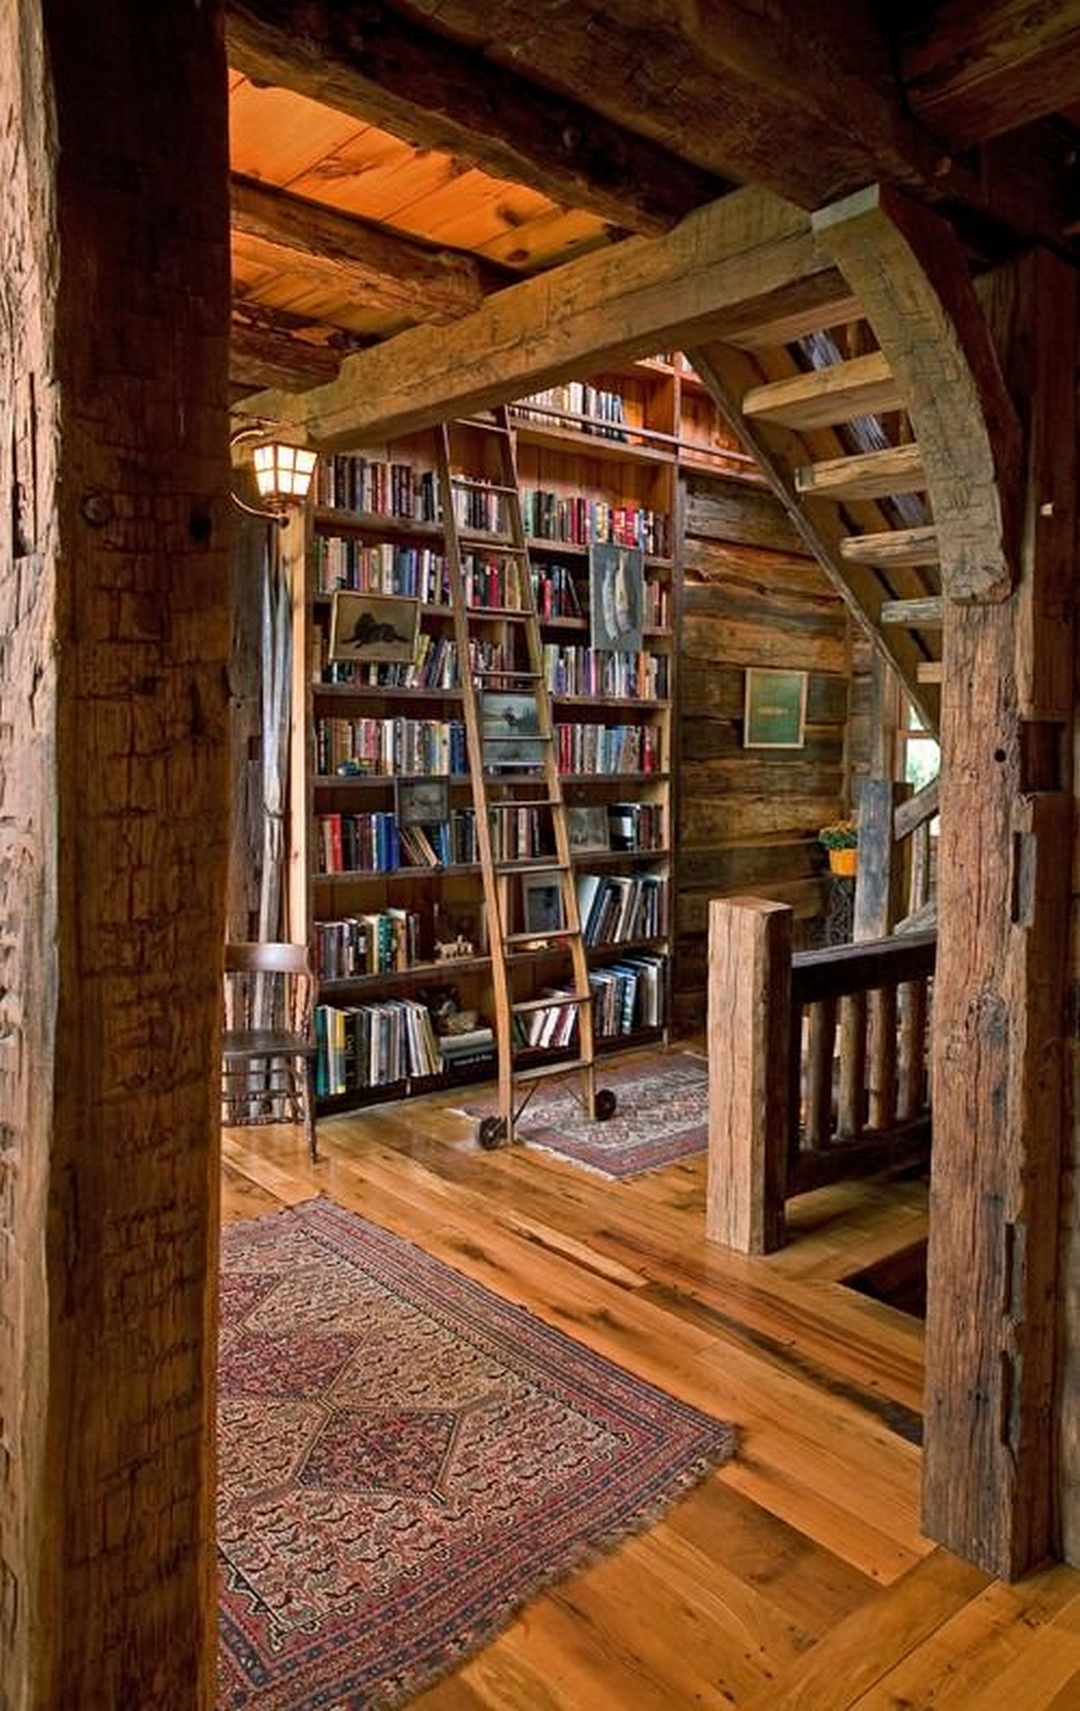 Rustic Library Den: Cardrona: A Small Holiday Home With A Similarly